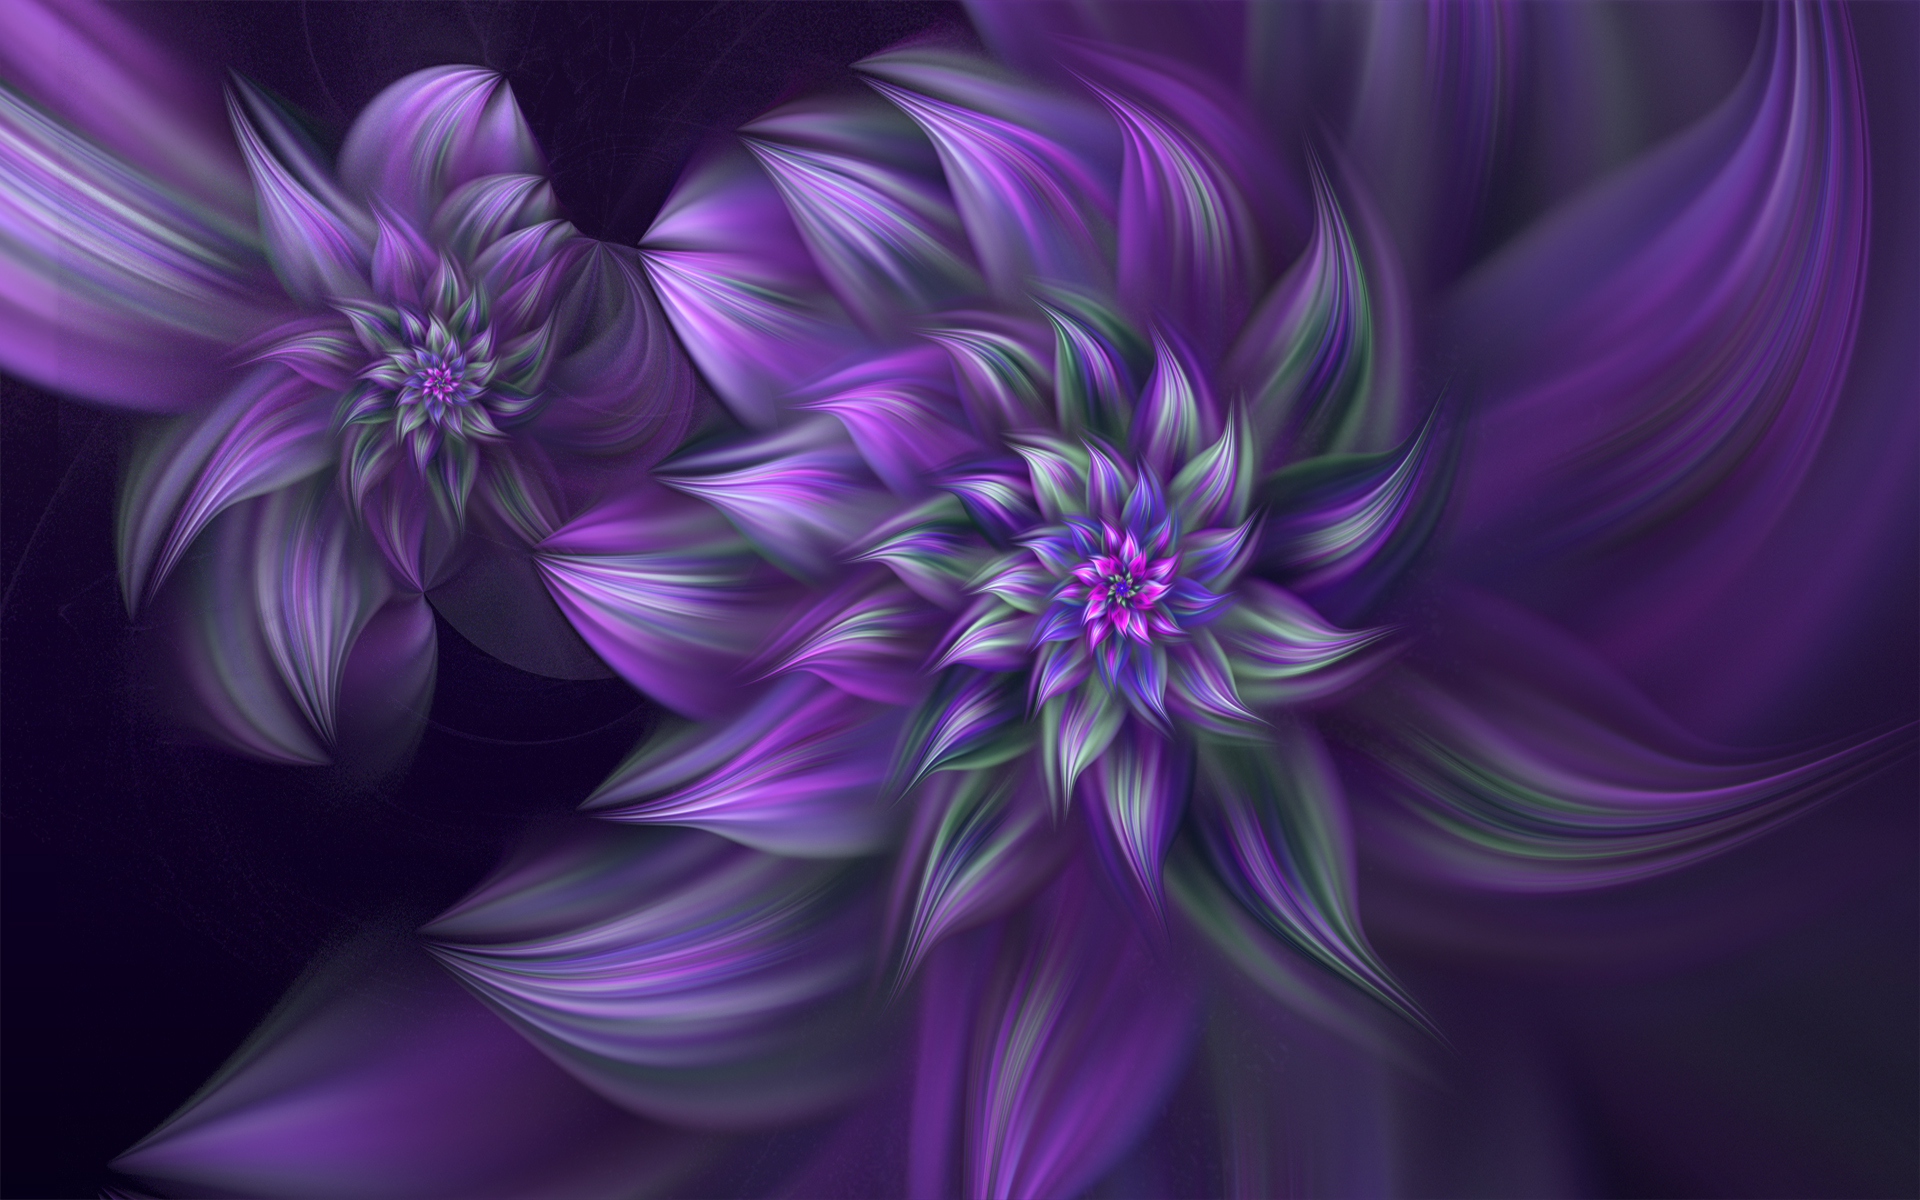 Fantastic Purple Flowers Wallpaper 10340